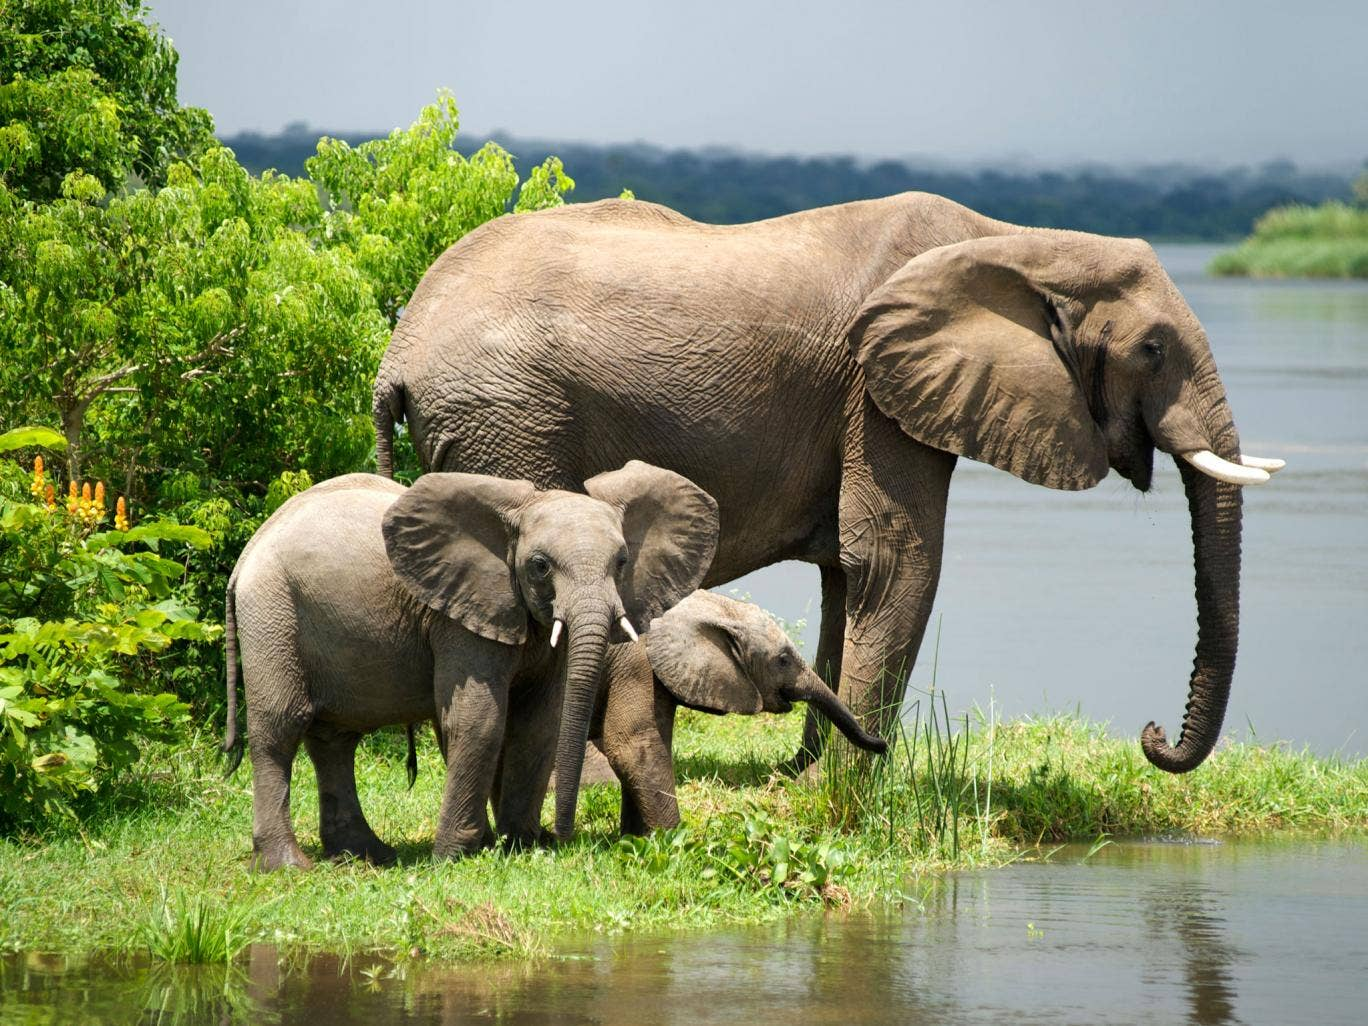 Elephants in Murchison Falls National Park, Uganda, remain at risk even there